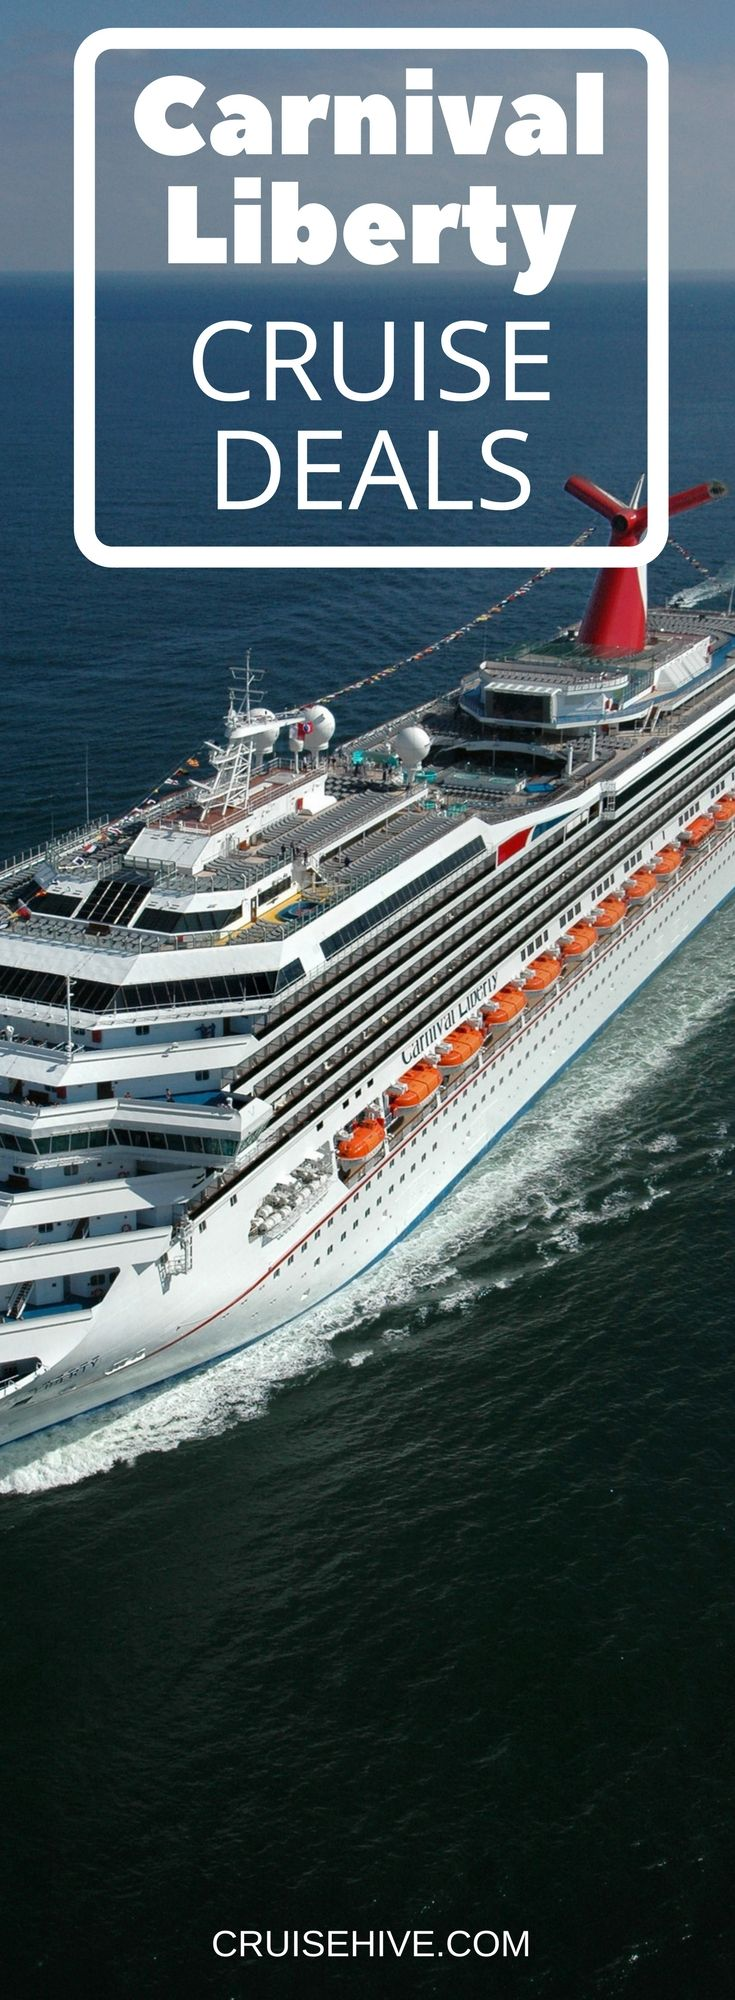 Carnival Cruise Line: Carnival Liberty Cruise Deals, Price